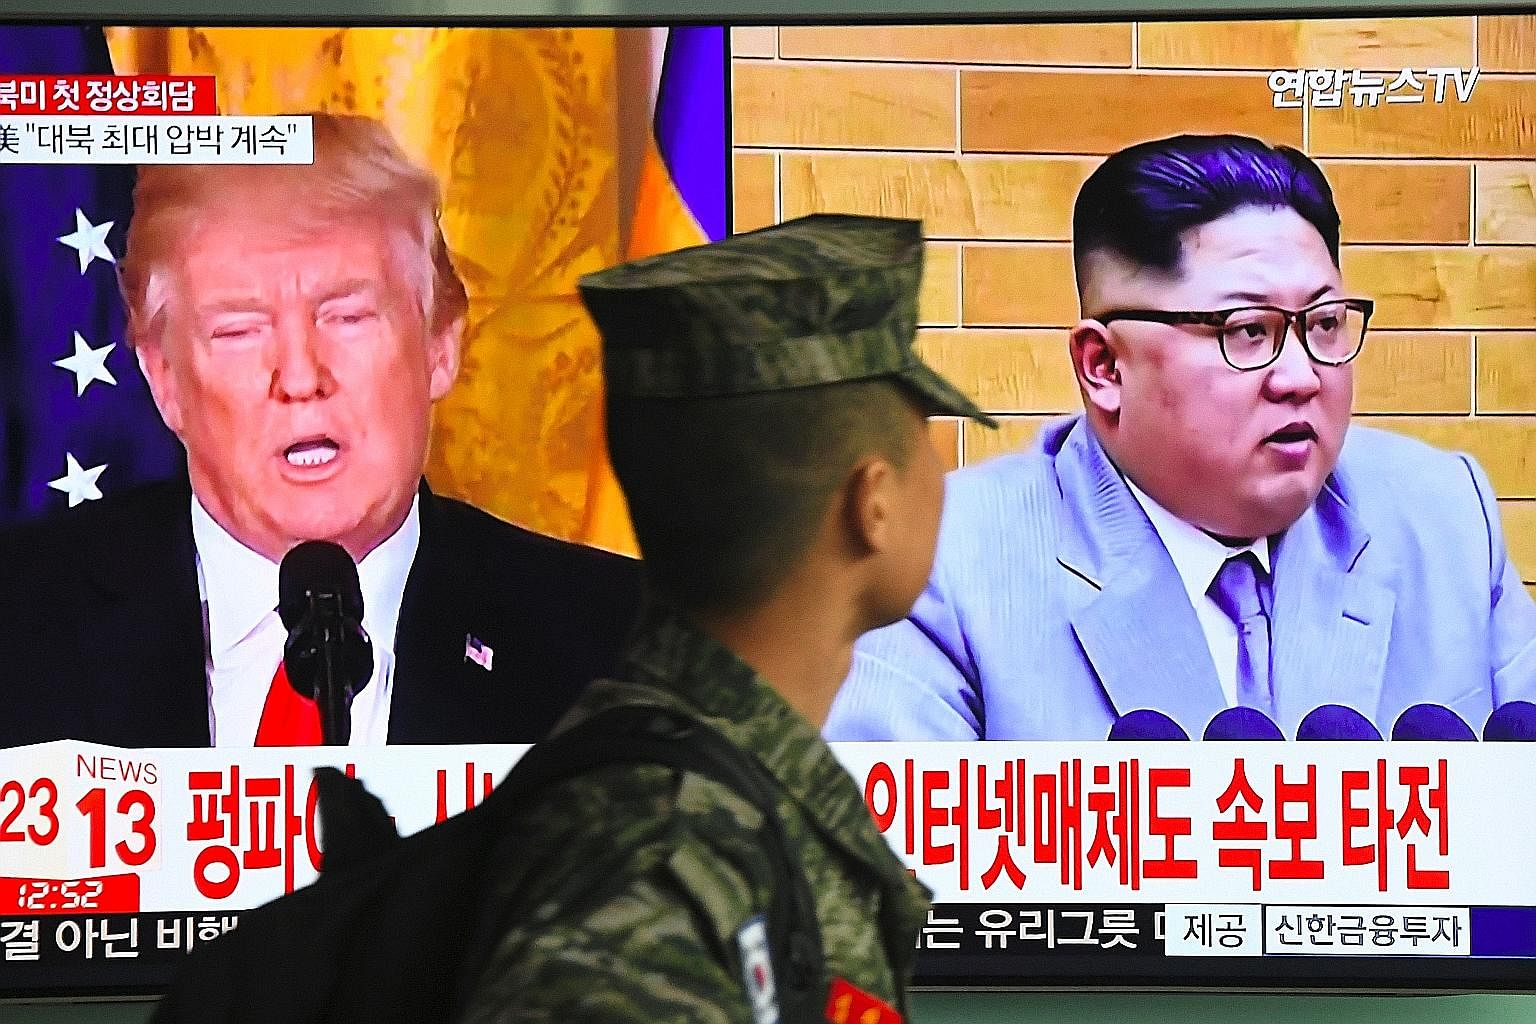 A television screen showing pictures of Mr Donald Trump and Mr Kim Jong Un at a Seoul railway station on Friday.